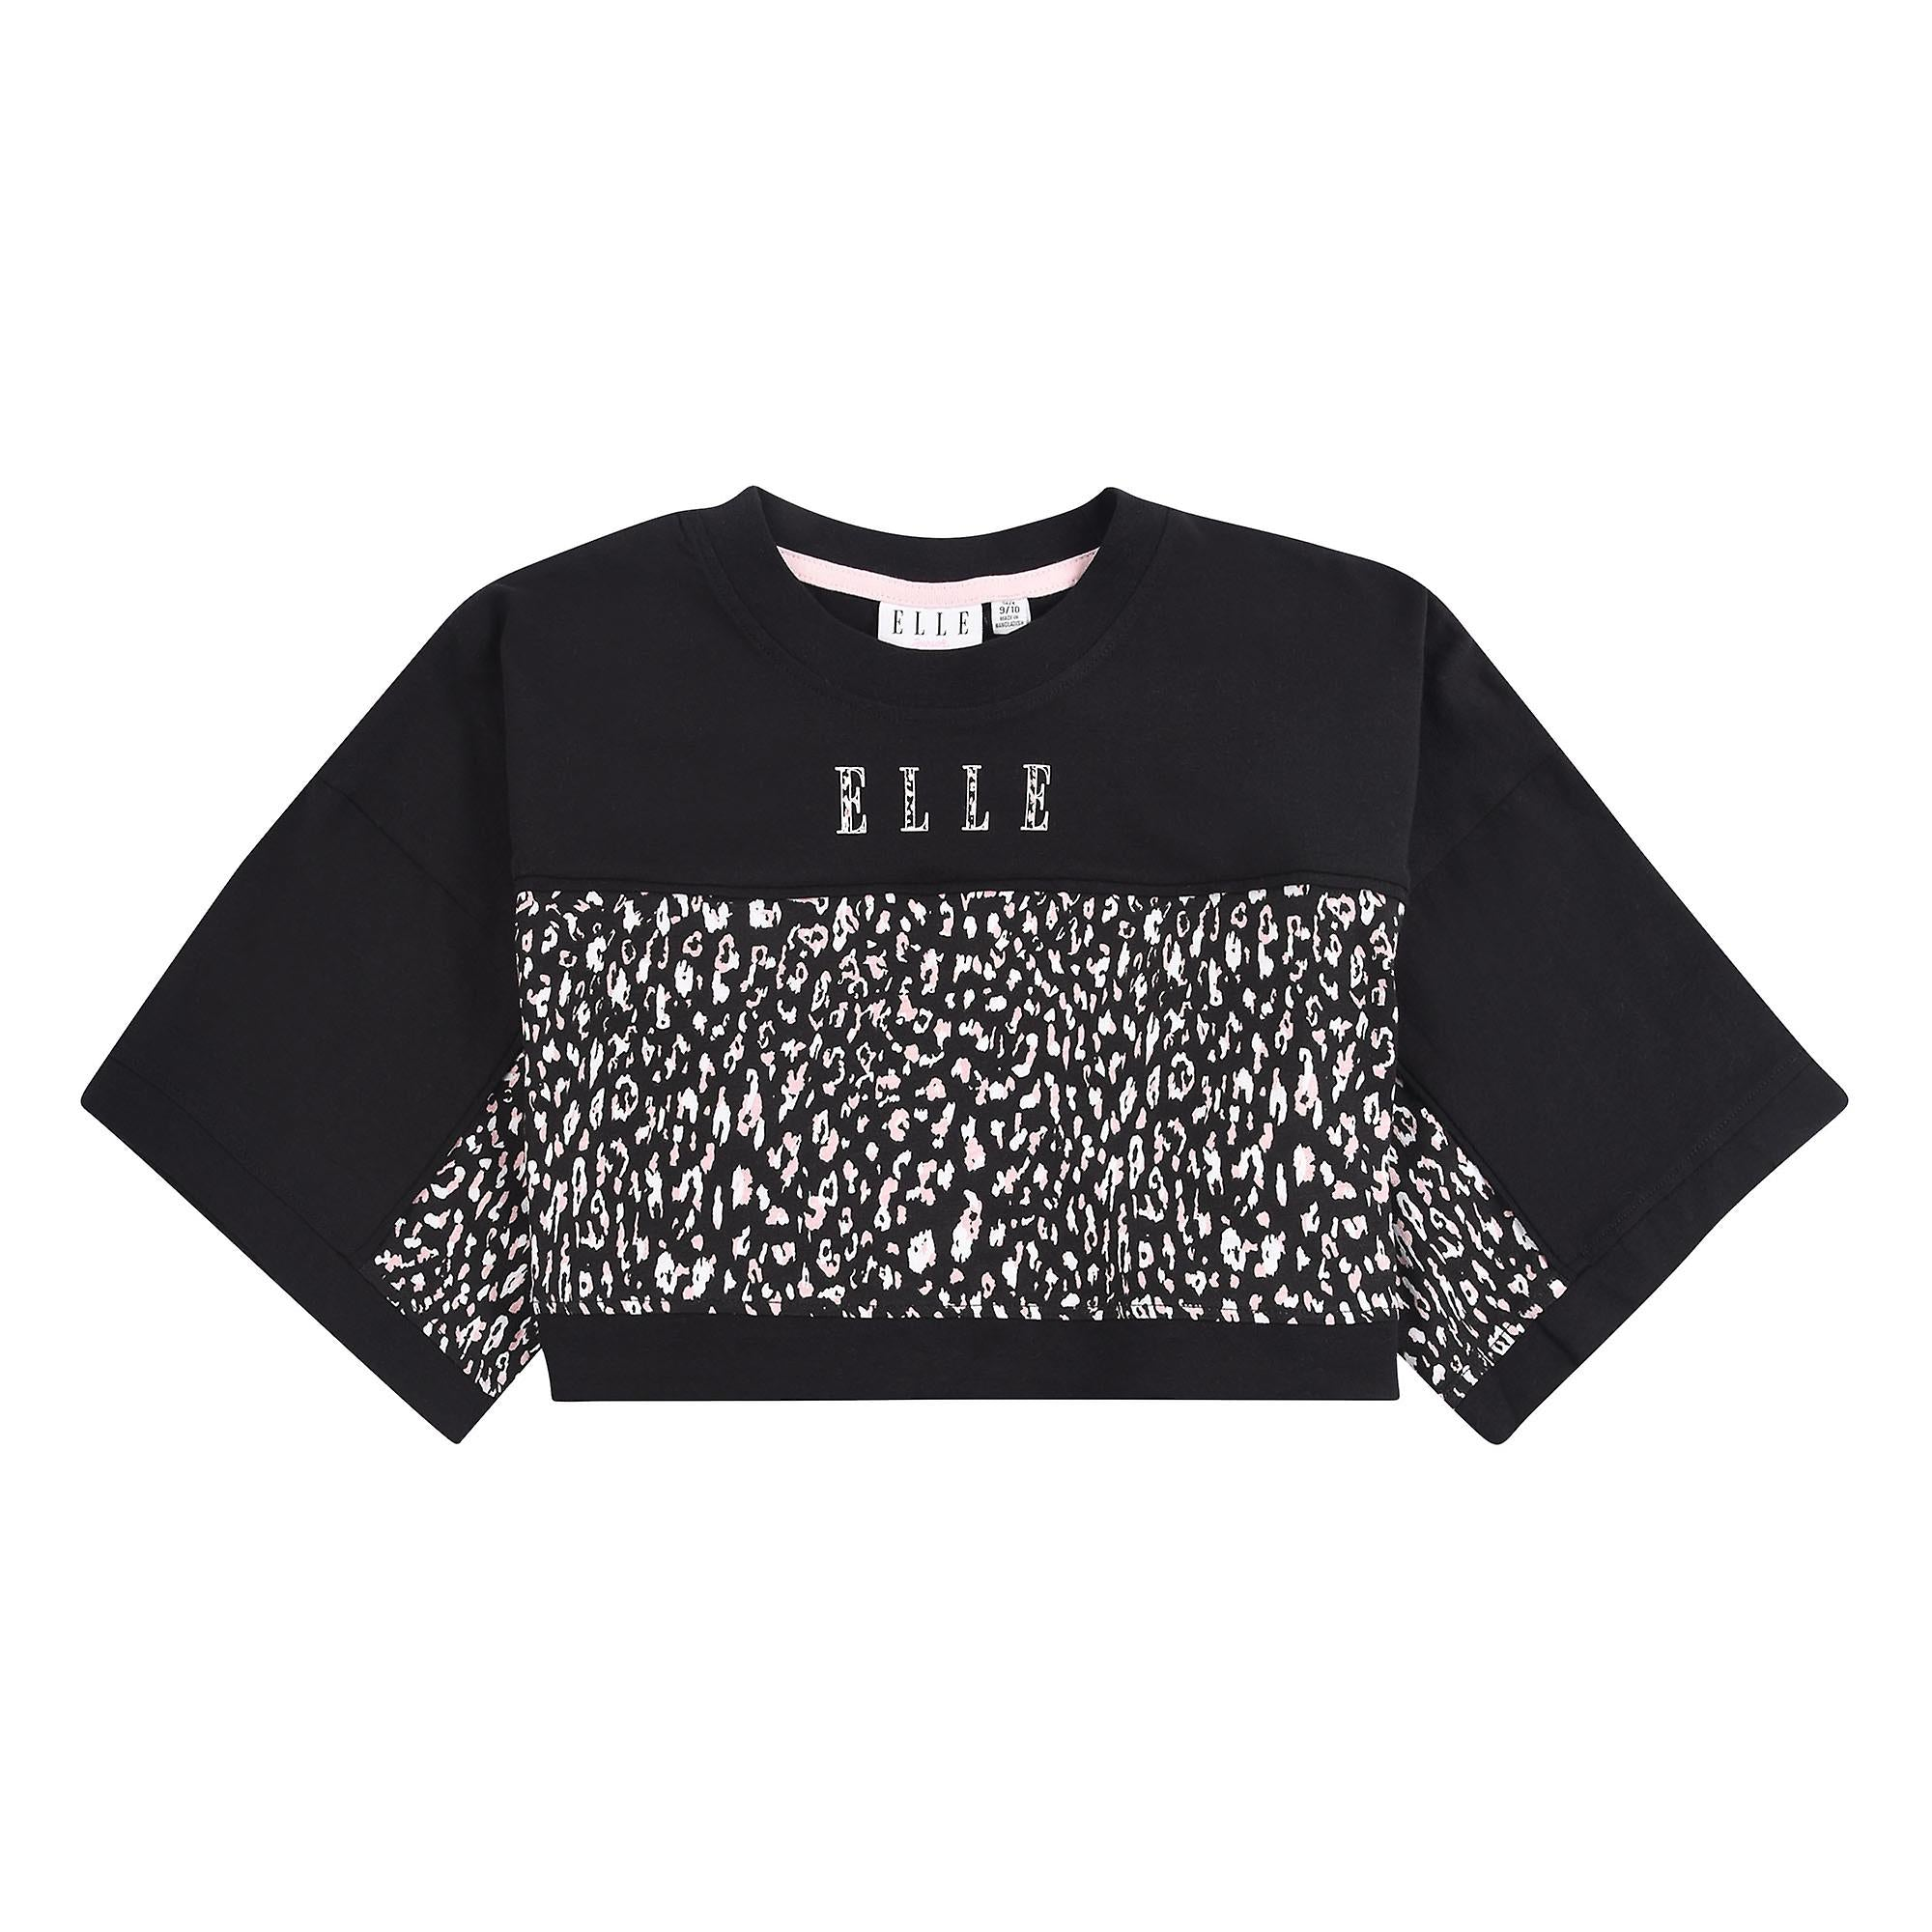 Elle Girls boxy cheetah print t-shirt - ELL0364